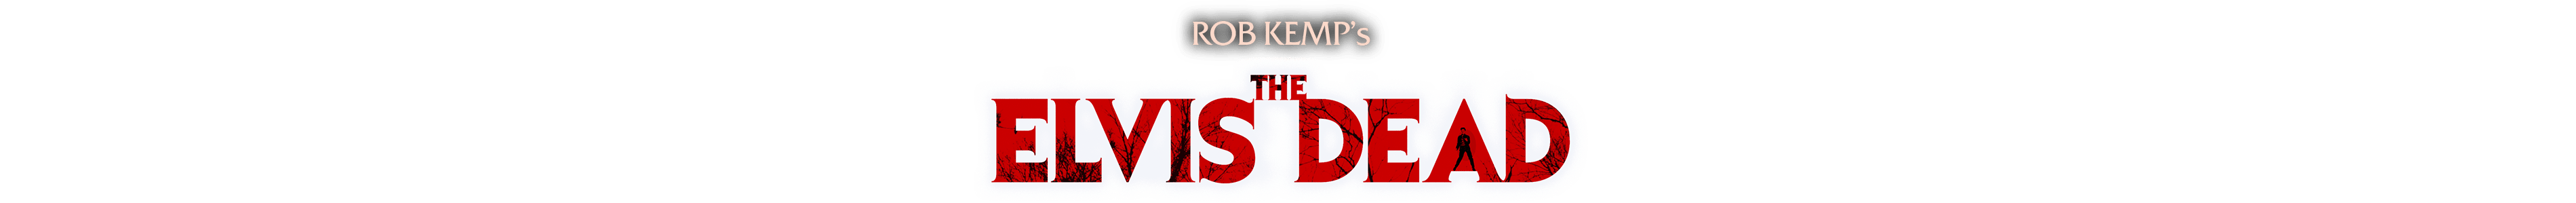 Rob Kemp's The Elvis Dead